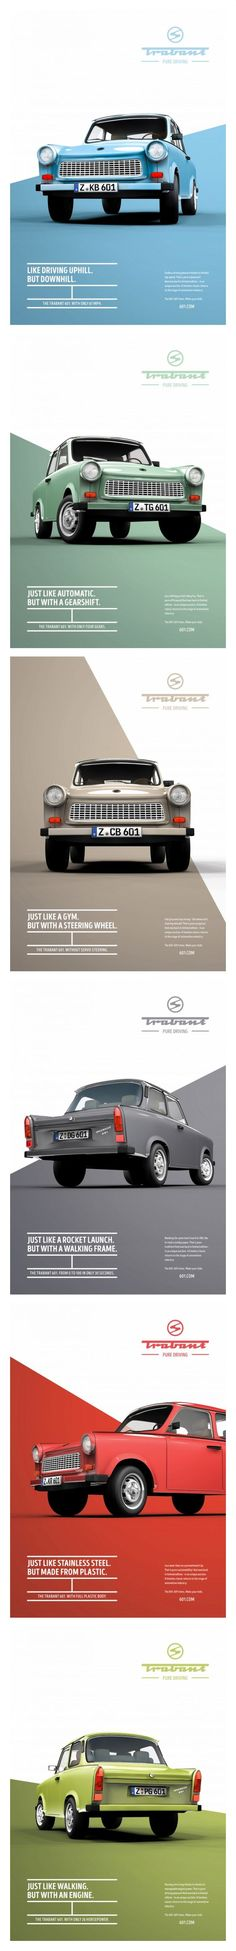 Trabant 601: Pure driving | design by Institute of Design, Düsseldorf, Germany: